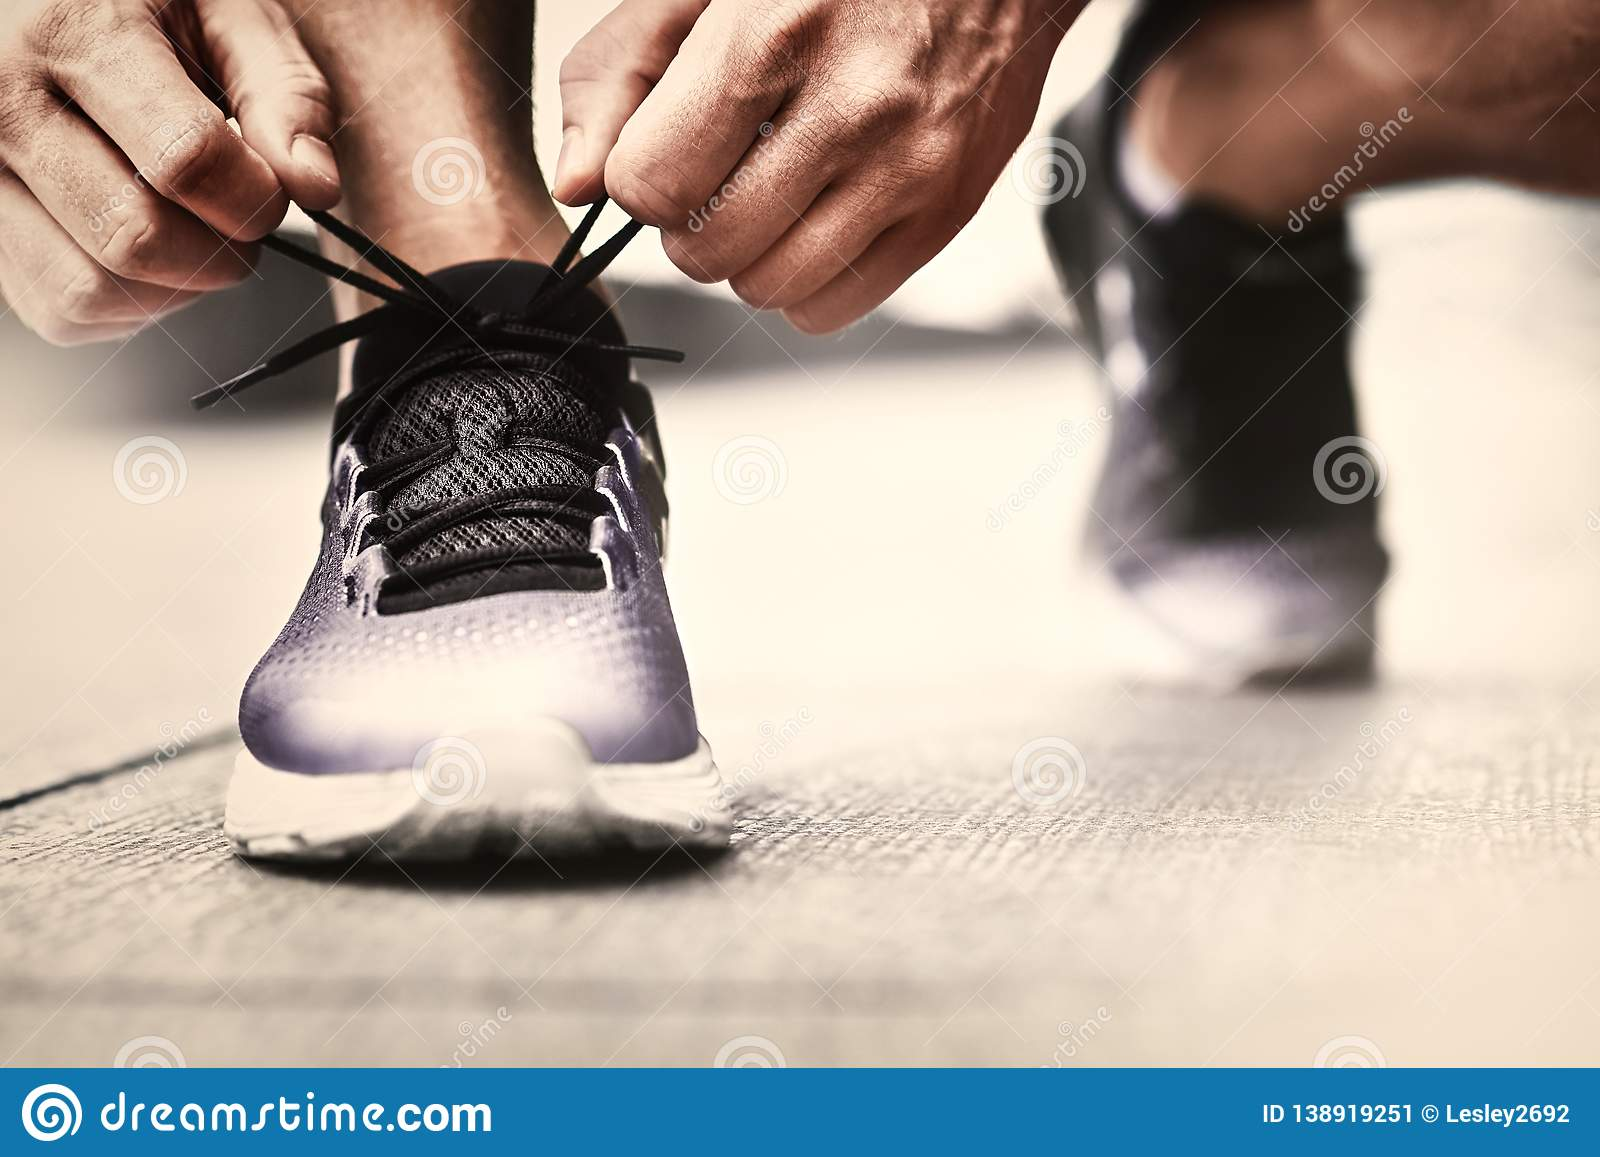 7b9f80311d4c Hands of sportsman with pedometer tying shoelaces on sporty sneaker. Running  equipment concept. Shoelaces tying by male hands